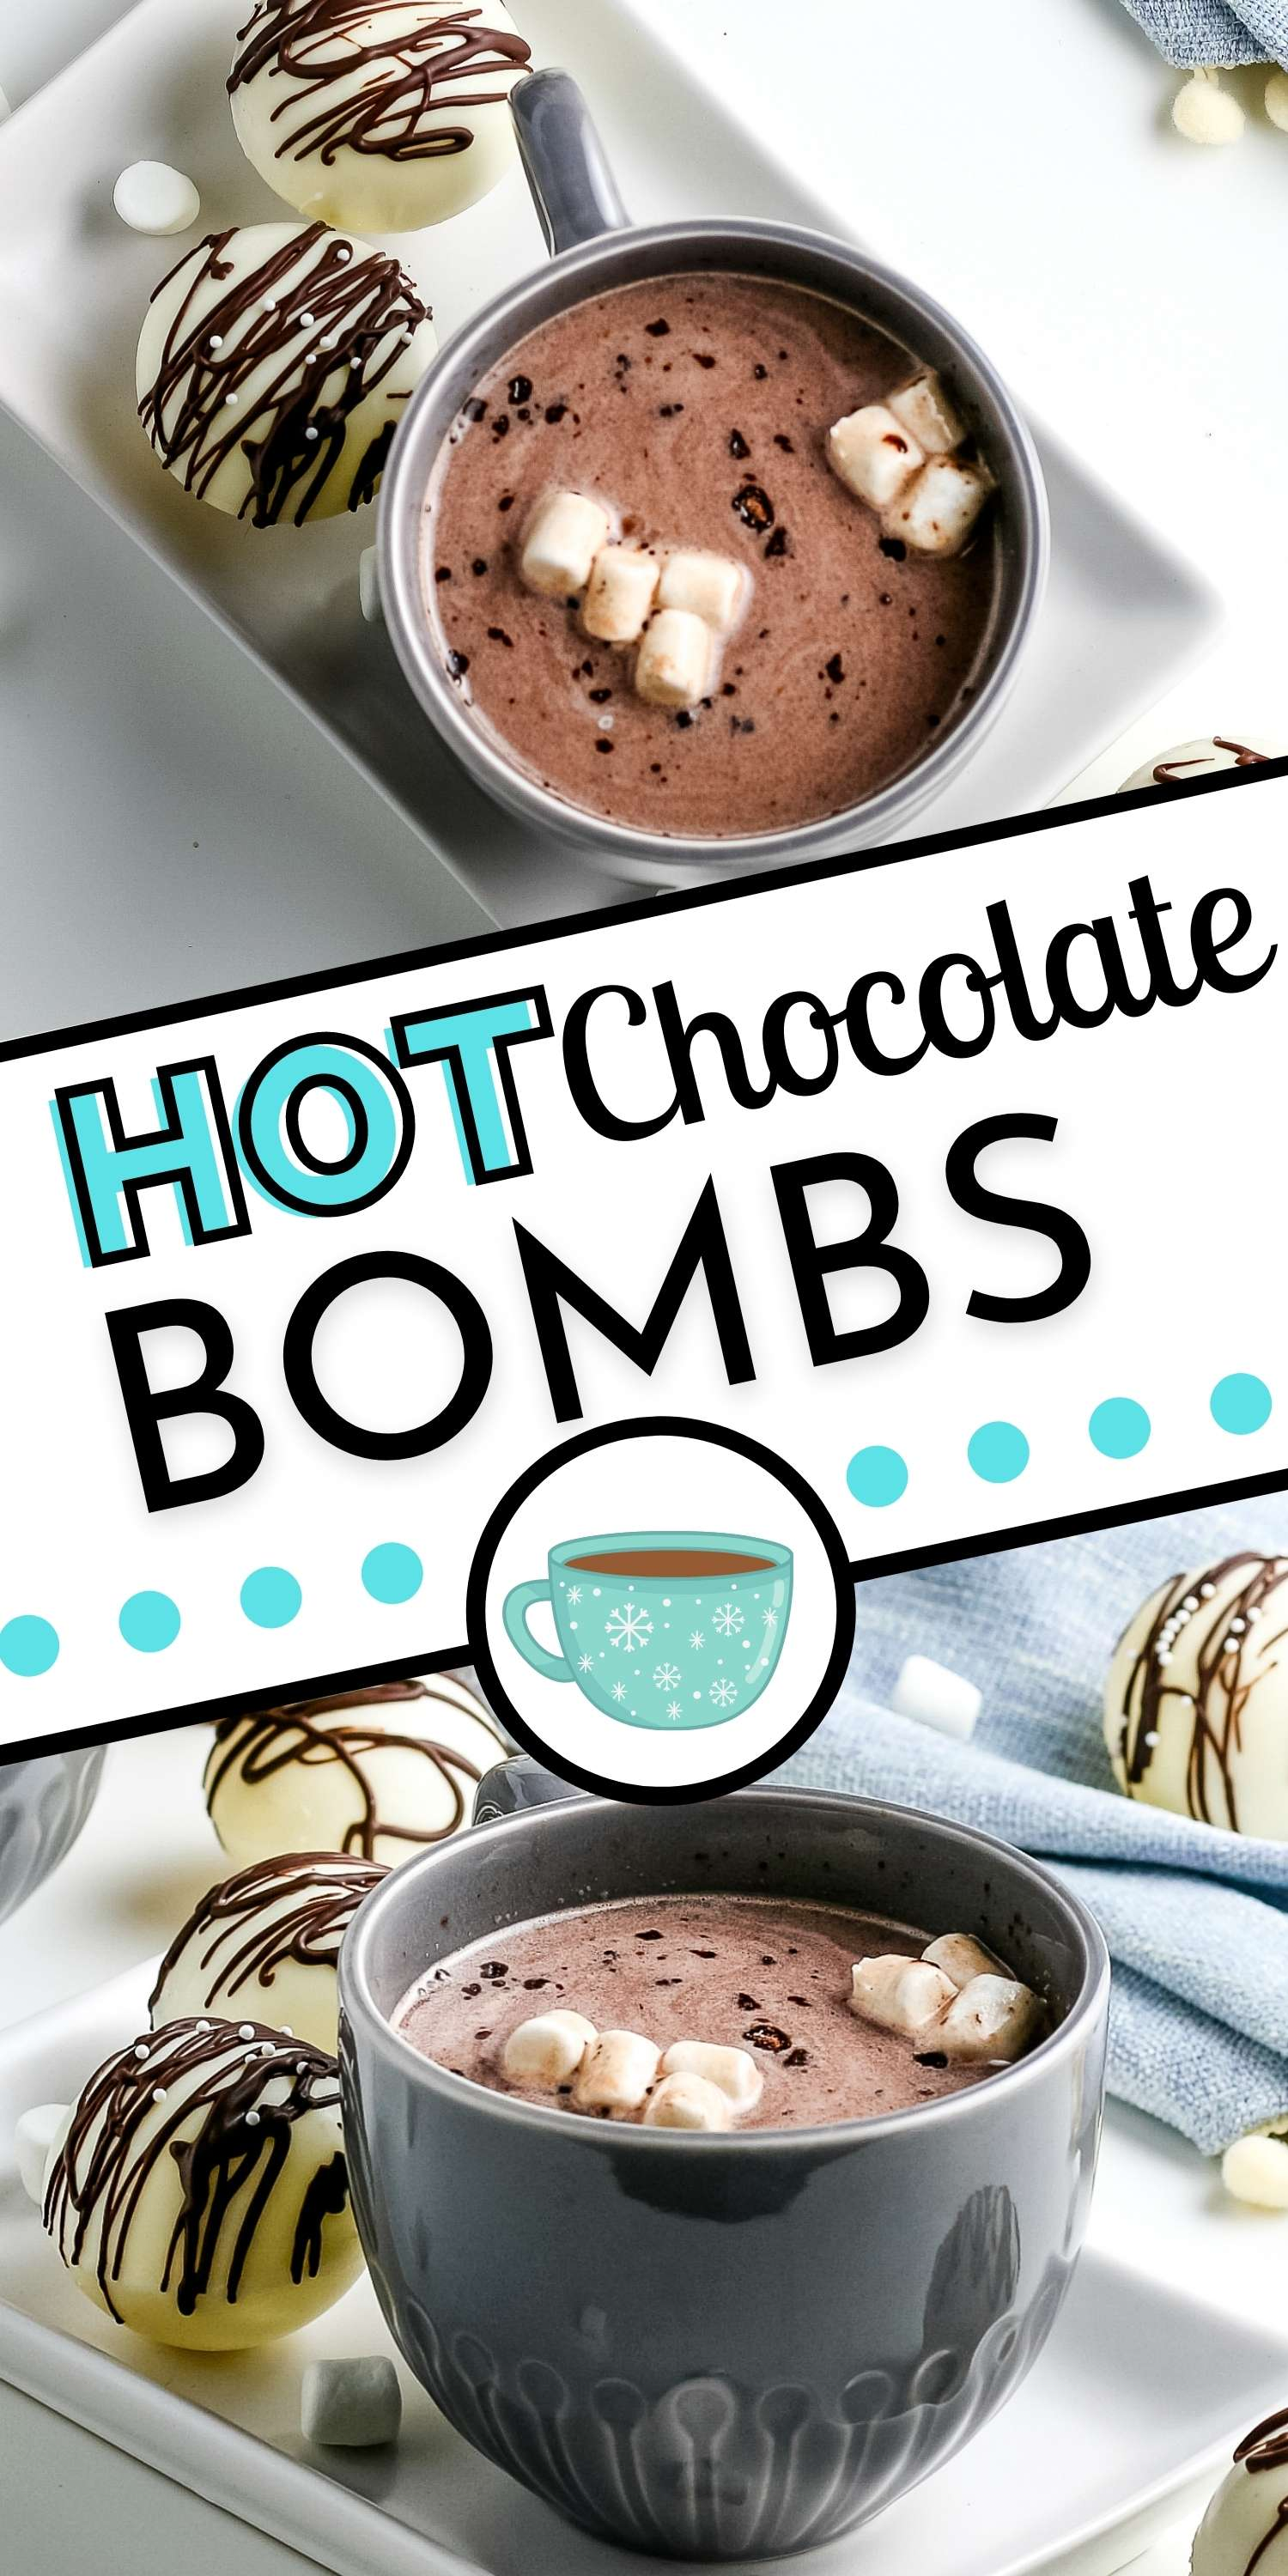 Here is a step-by-step tutorial on How To Make Hot Chocolate Bombs. Make six cocoa bombs for less than the price of one at chocolate shops and high-end food stores! via @foodfolksandfun